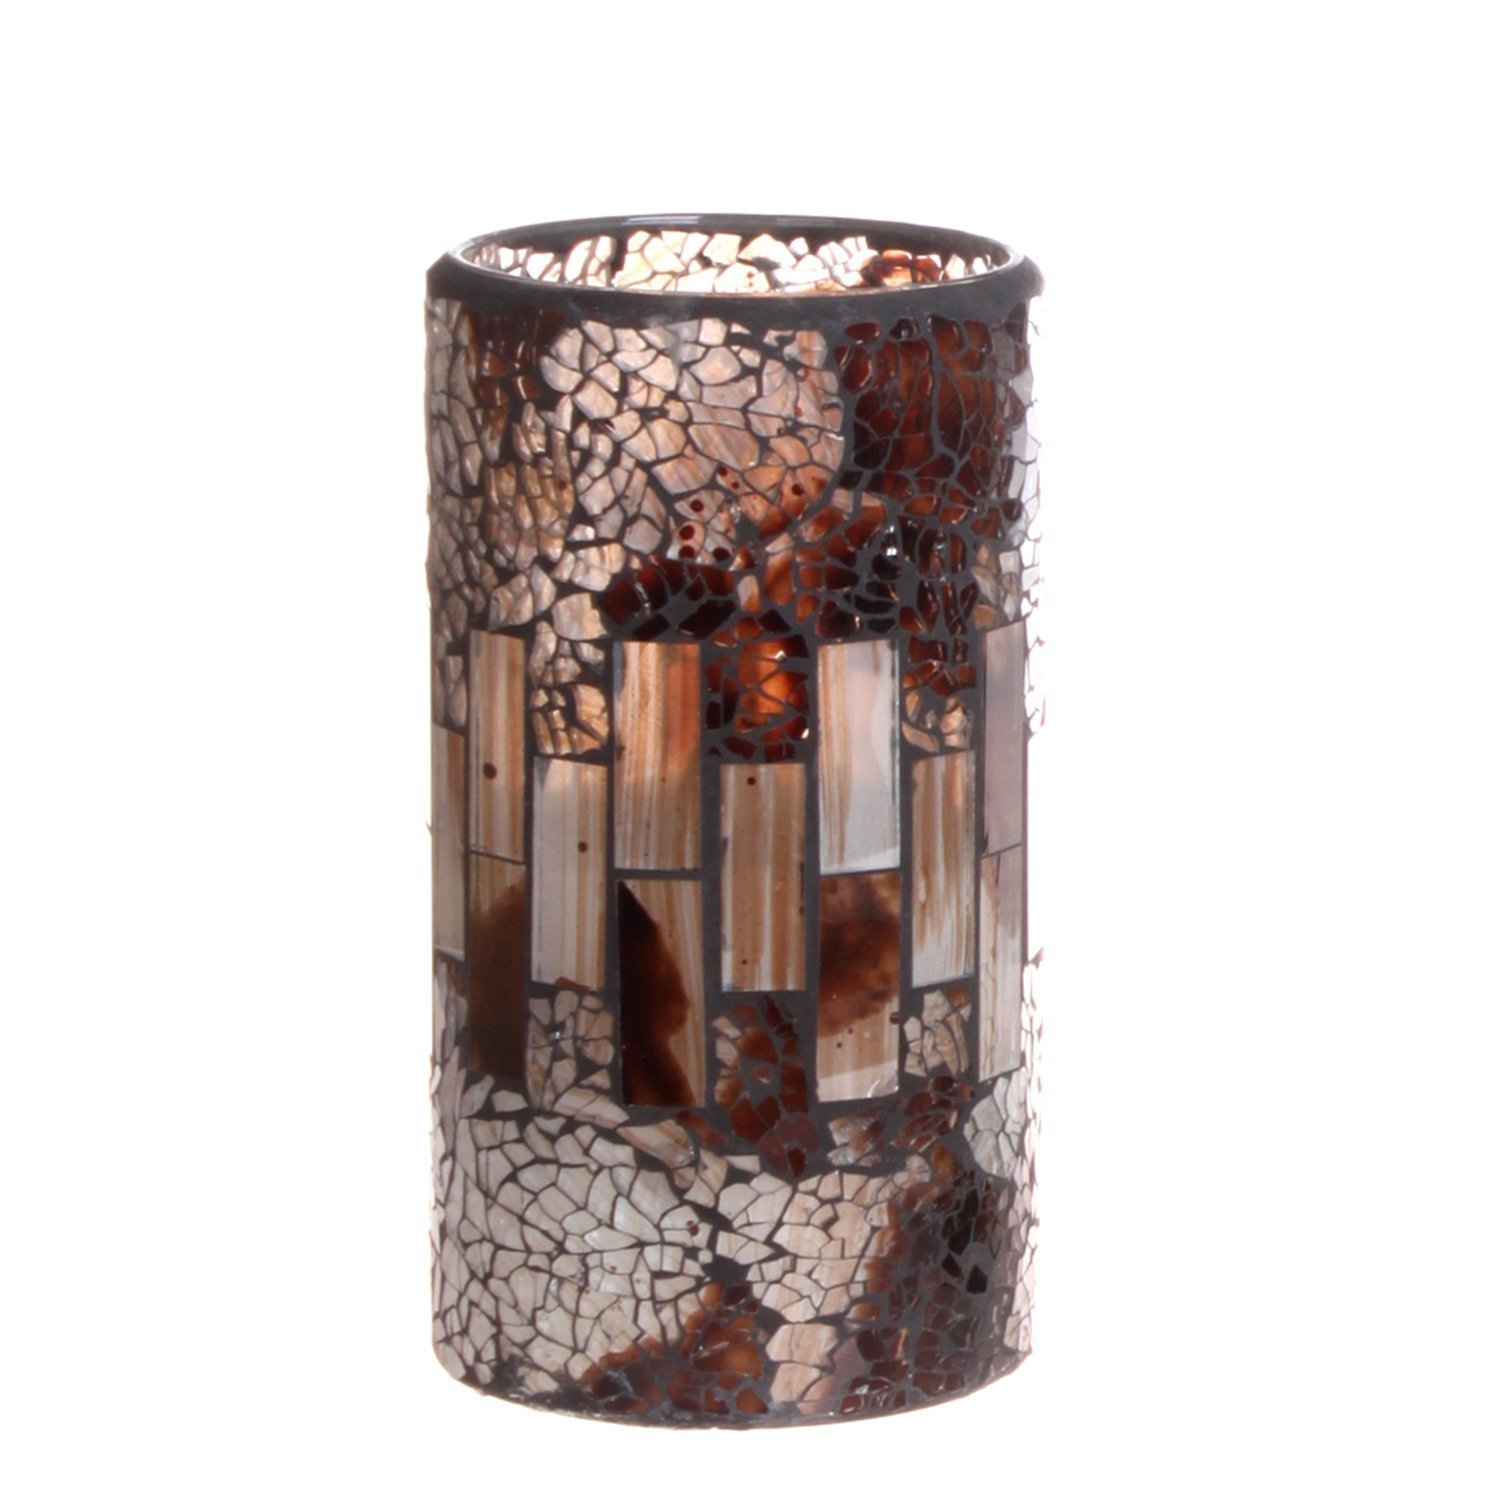 (7.6cm x 10cm, Grey) - GiveU Mosaic Flameless Candle, Pillar Led Candle with Timer, 7.6cm X 10cm, for Home Decor, Weddings, Partys and Awesome Gift B00I001R22 16245 3 x 4